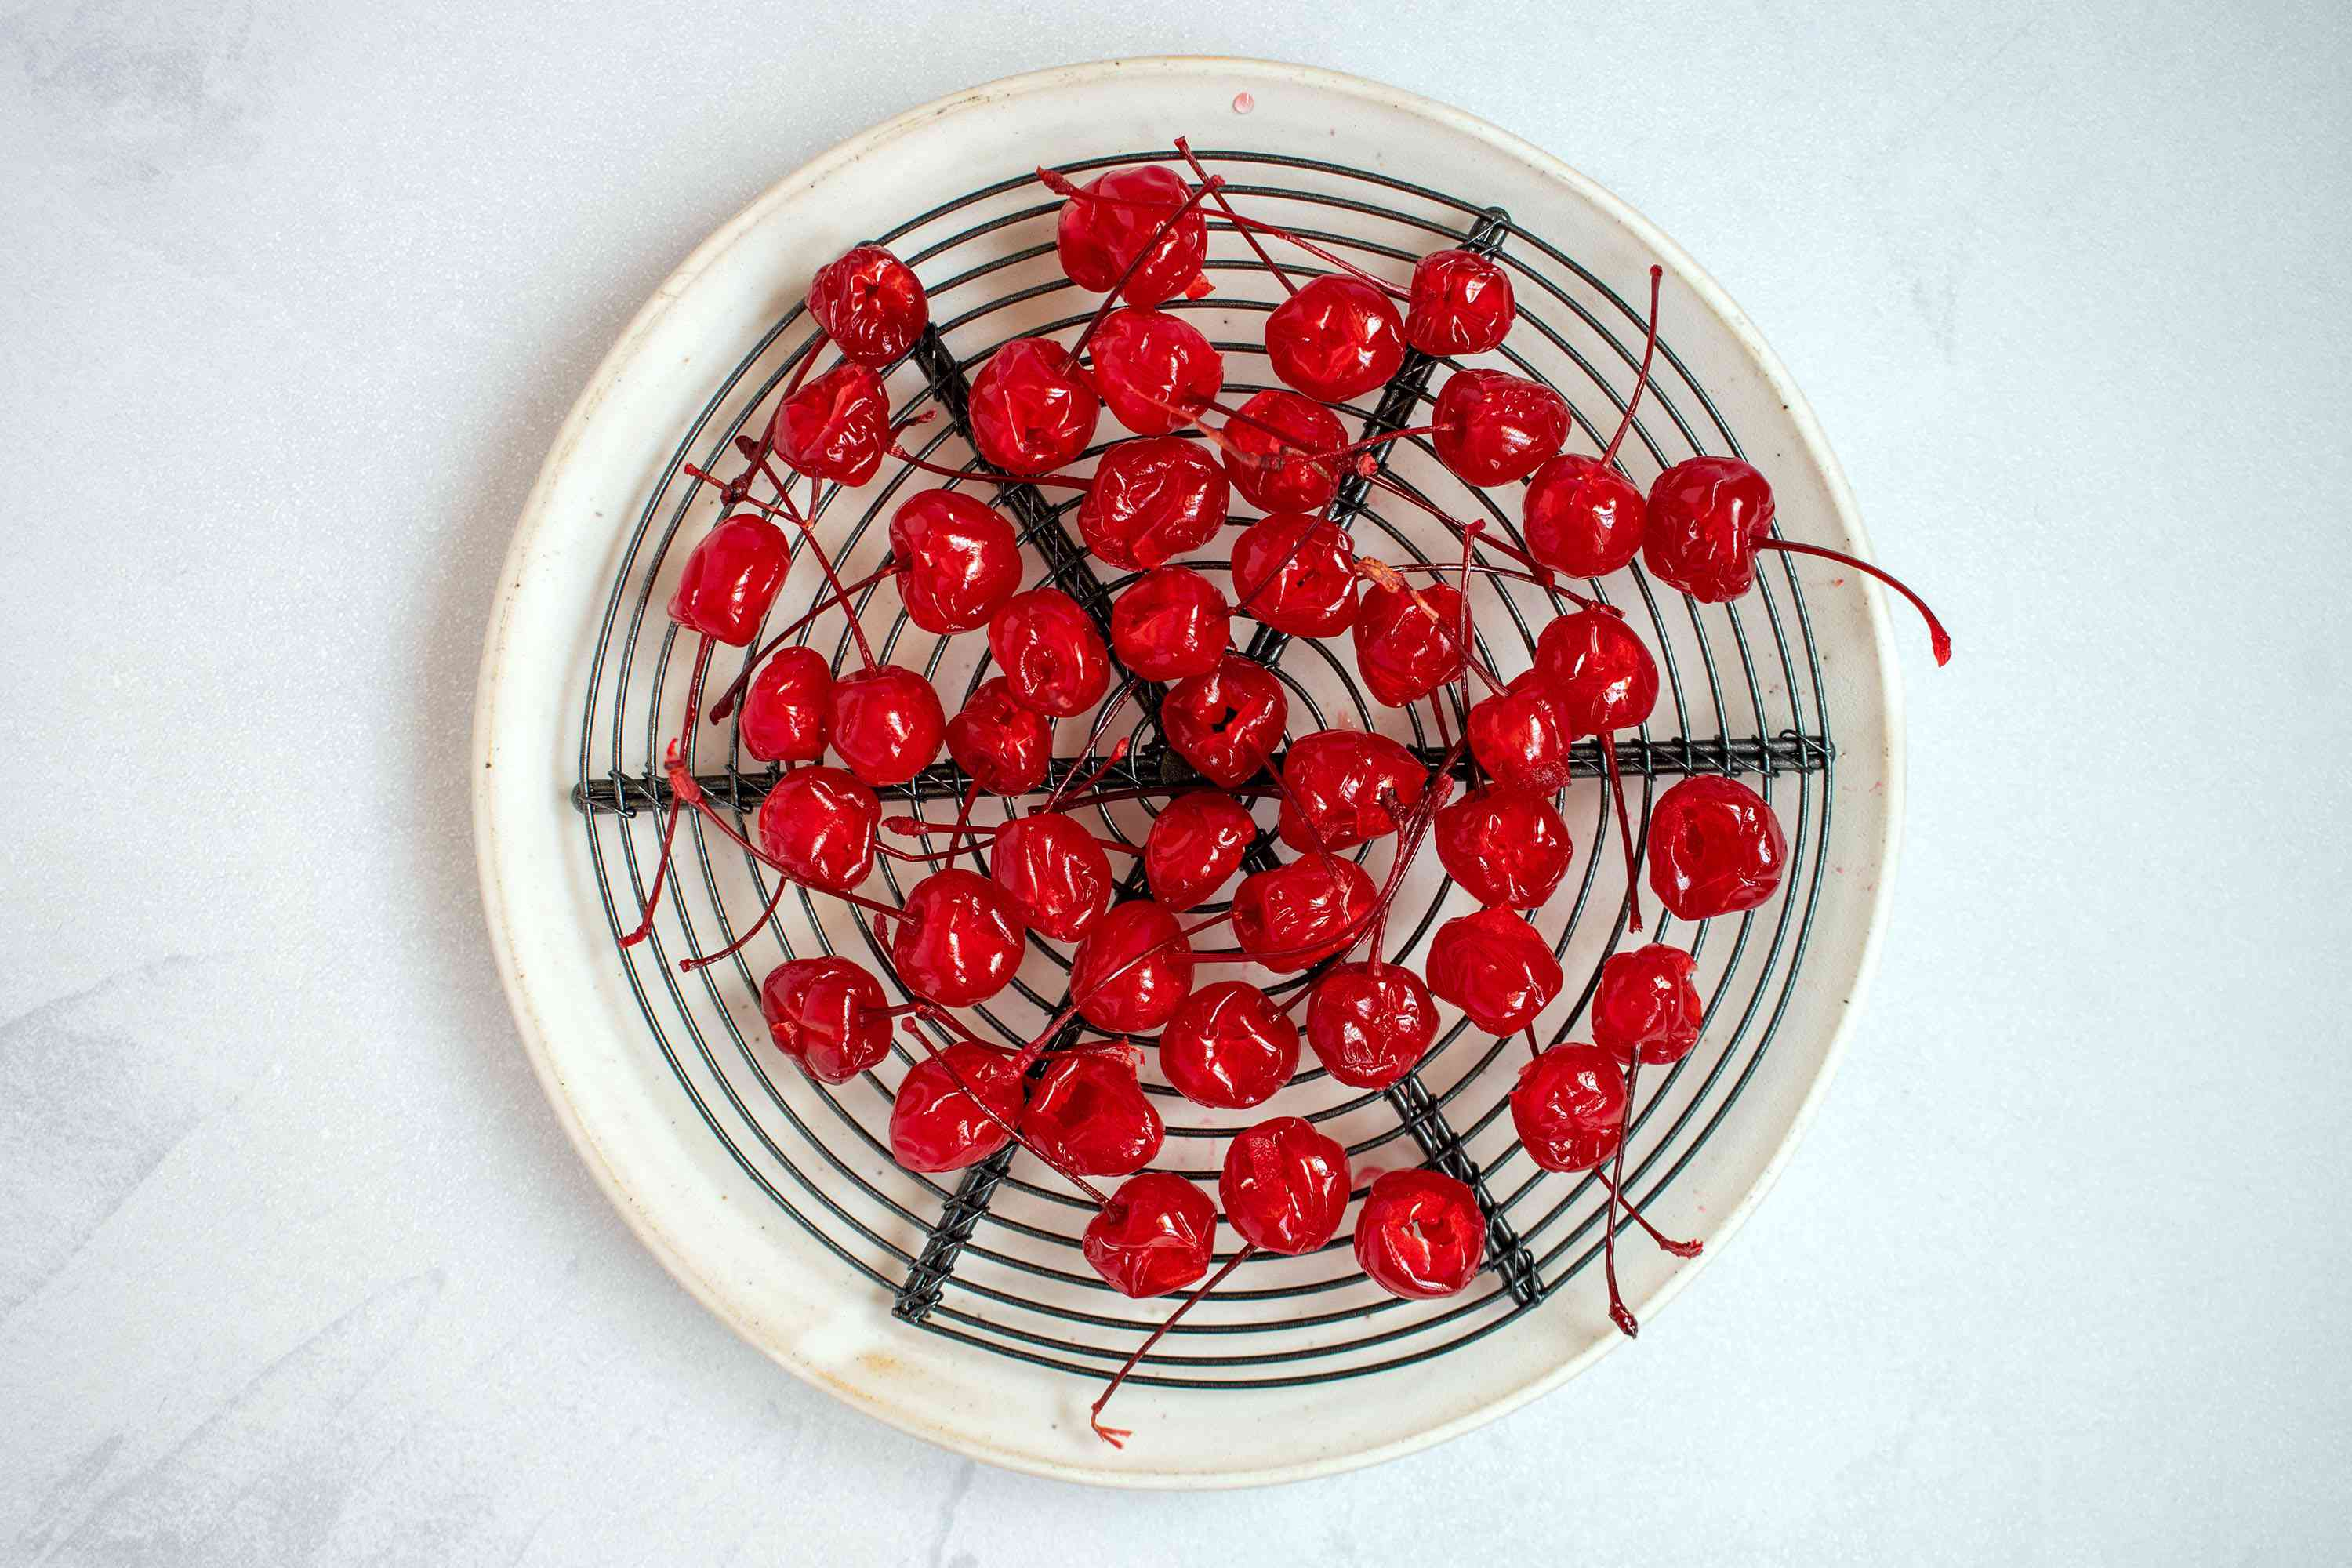 Cherries drying on a wire rack